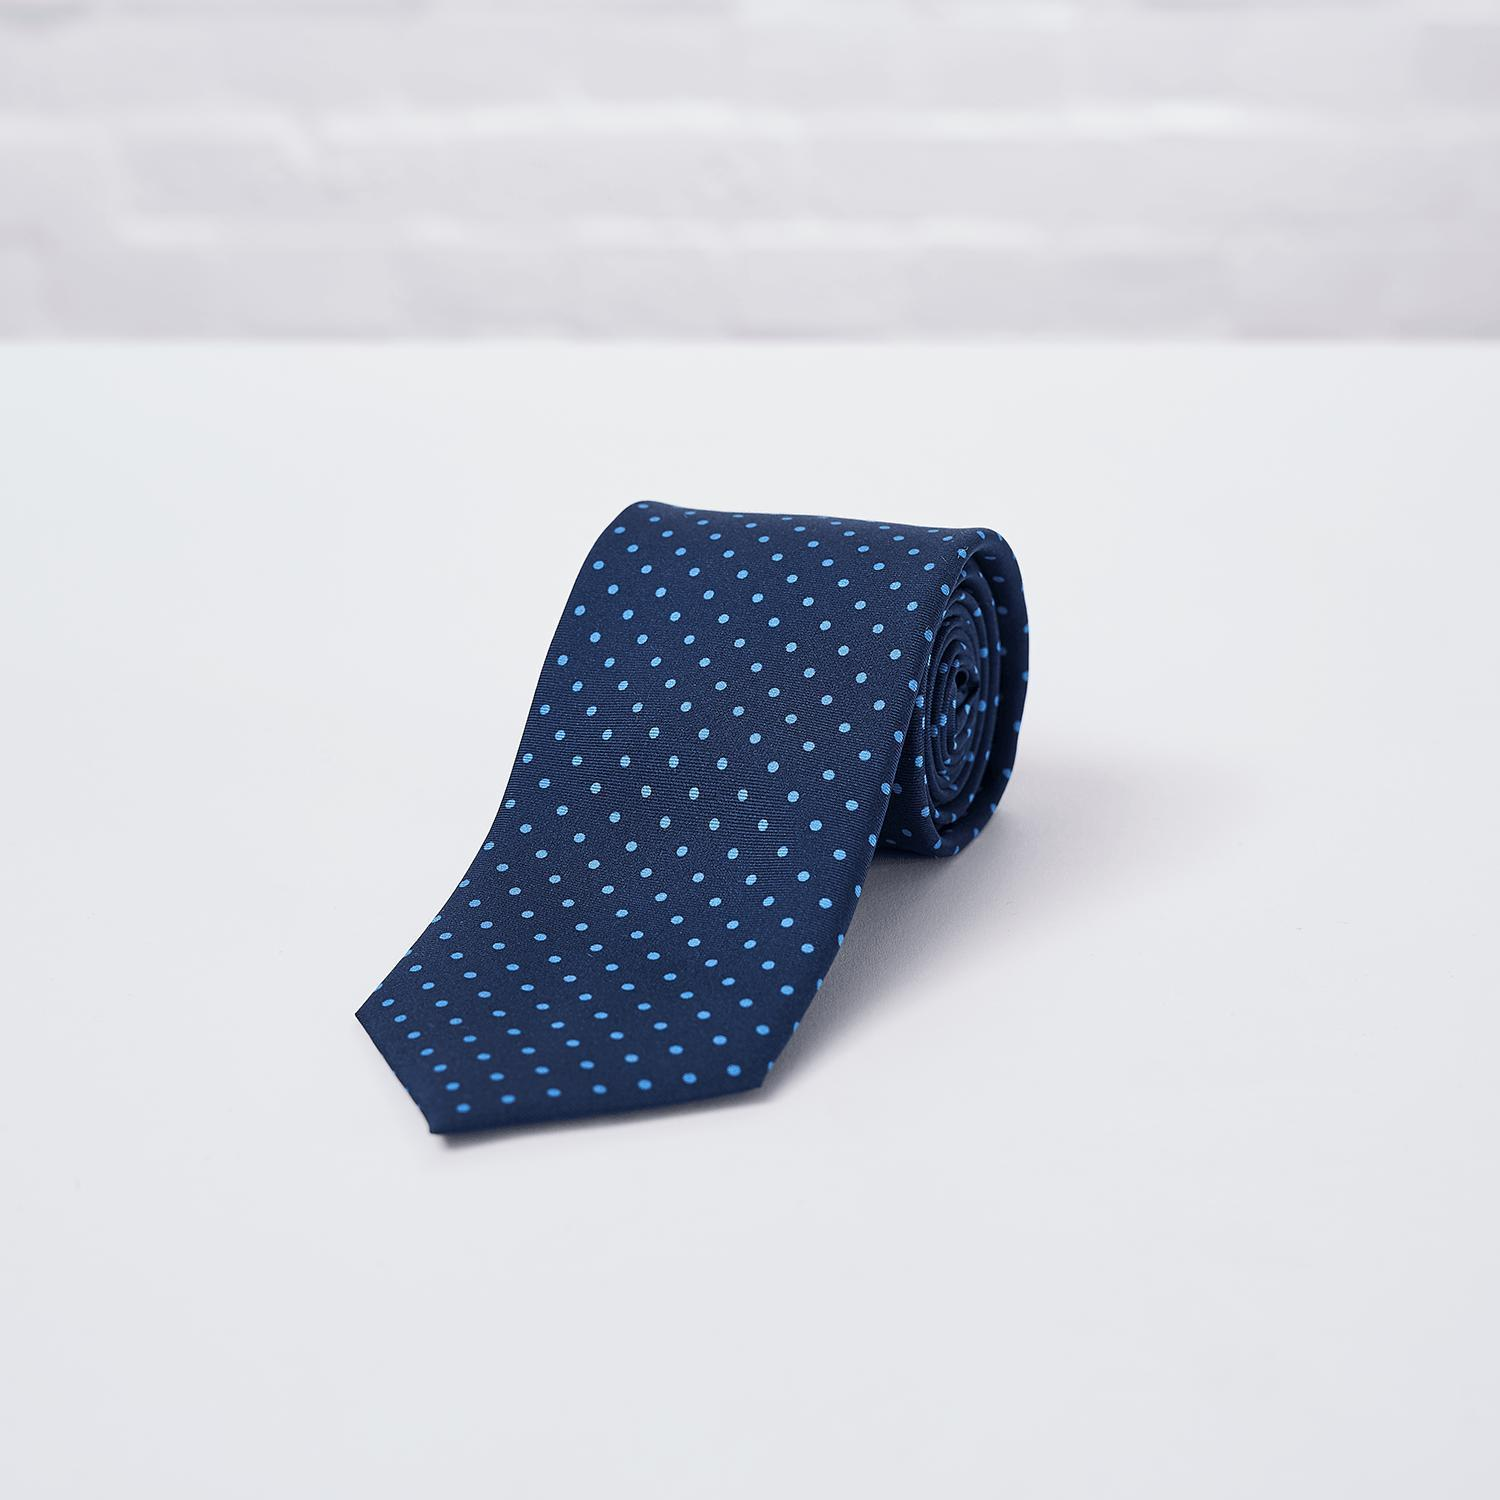 Navy Blue Small Spot Printed Silk Tie - British Made